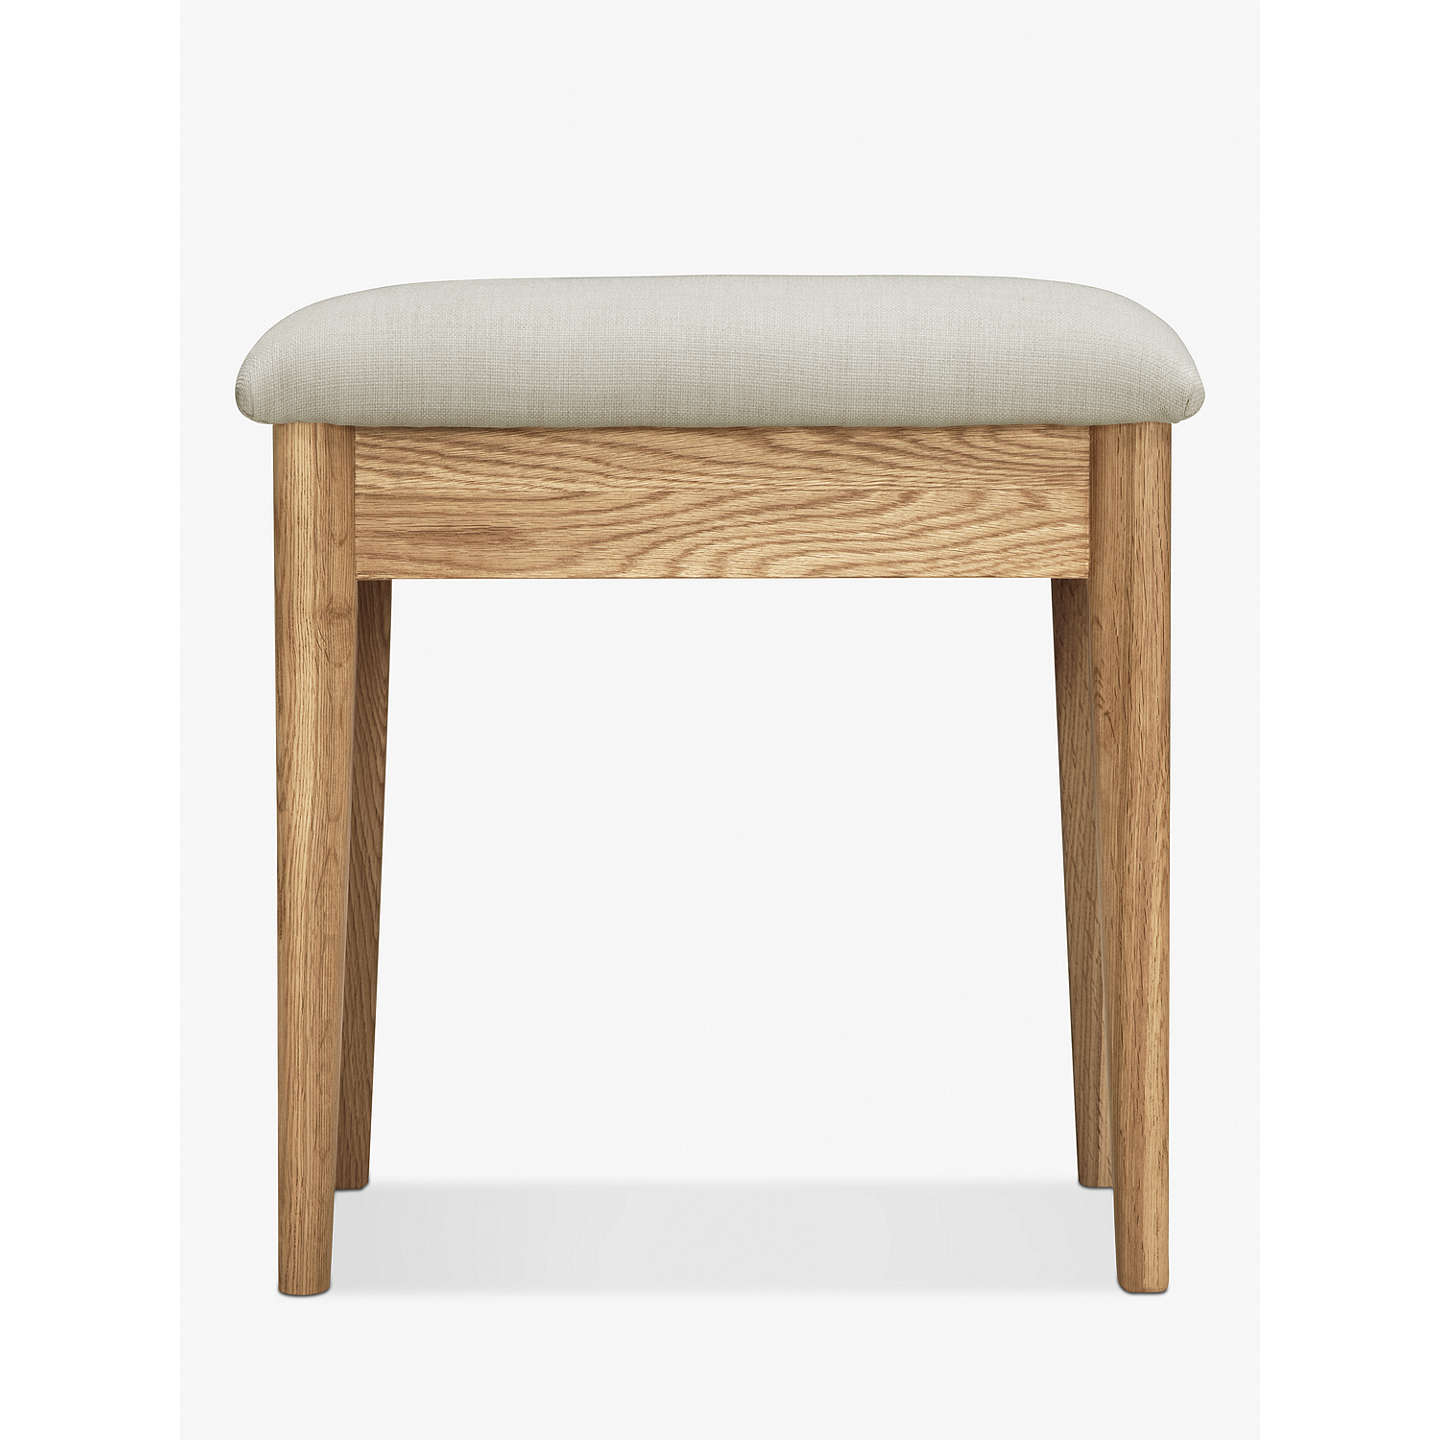 Bedroom Chairs At John Lewis Bedroom Guardian Bed Bugs Bedroom Ideas Apartment Bedroom Paint Colors For Sleeping: John Lewis Essence Stool, Oak At John Lewis